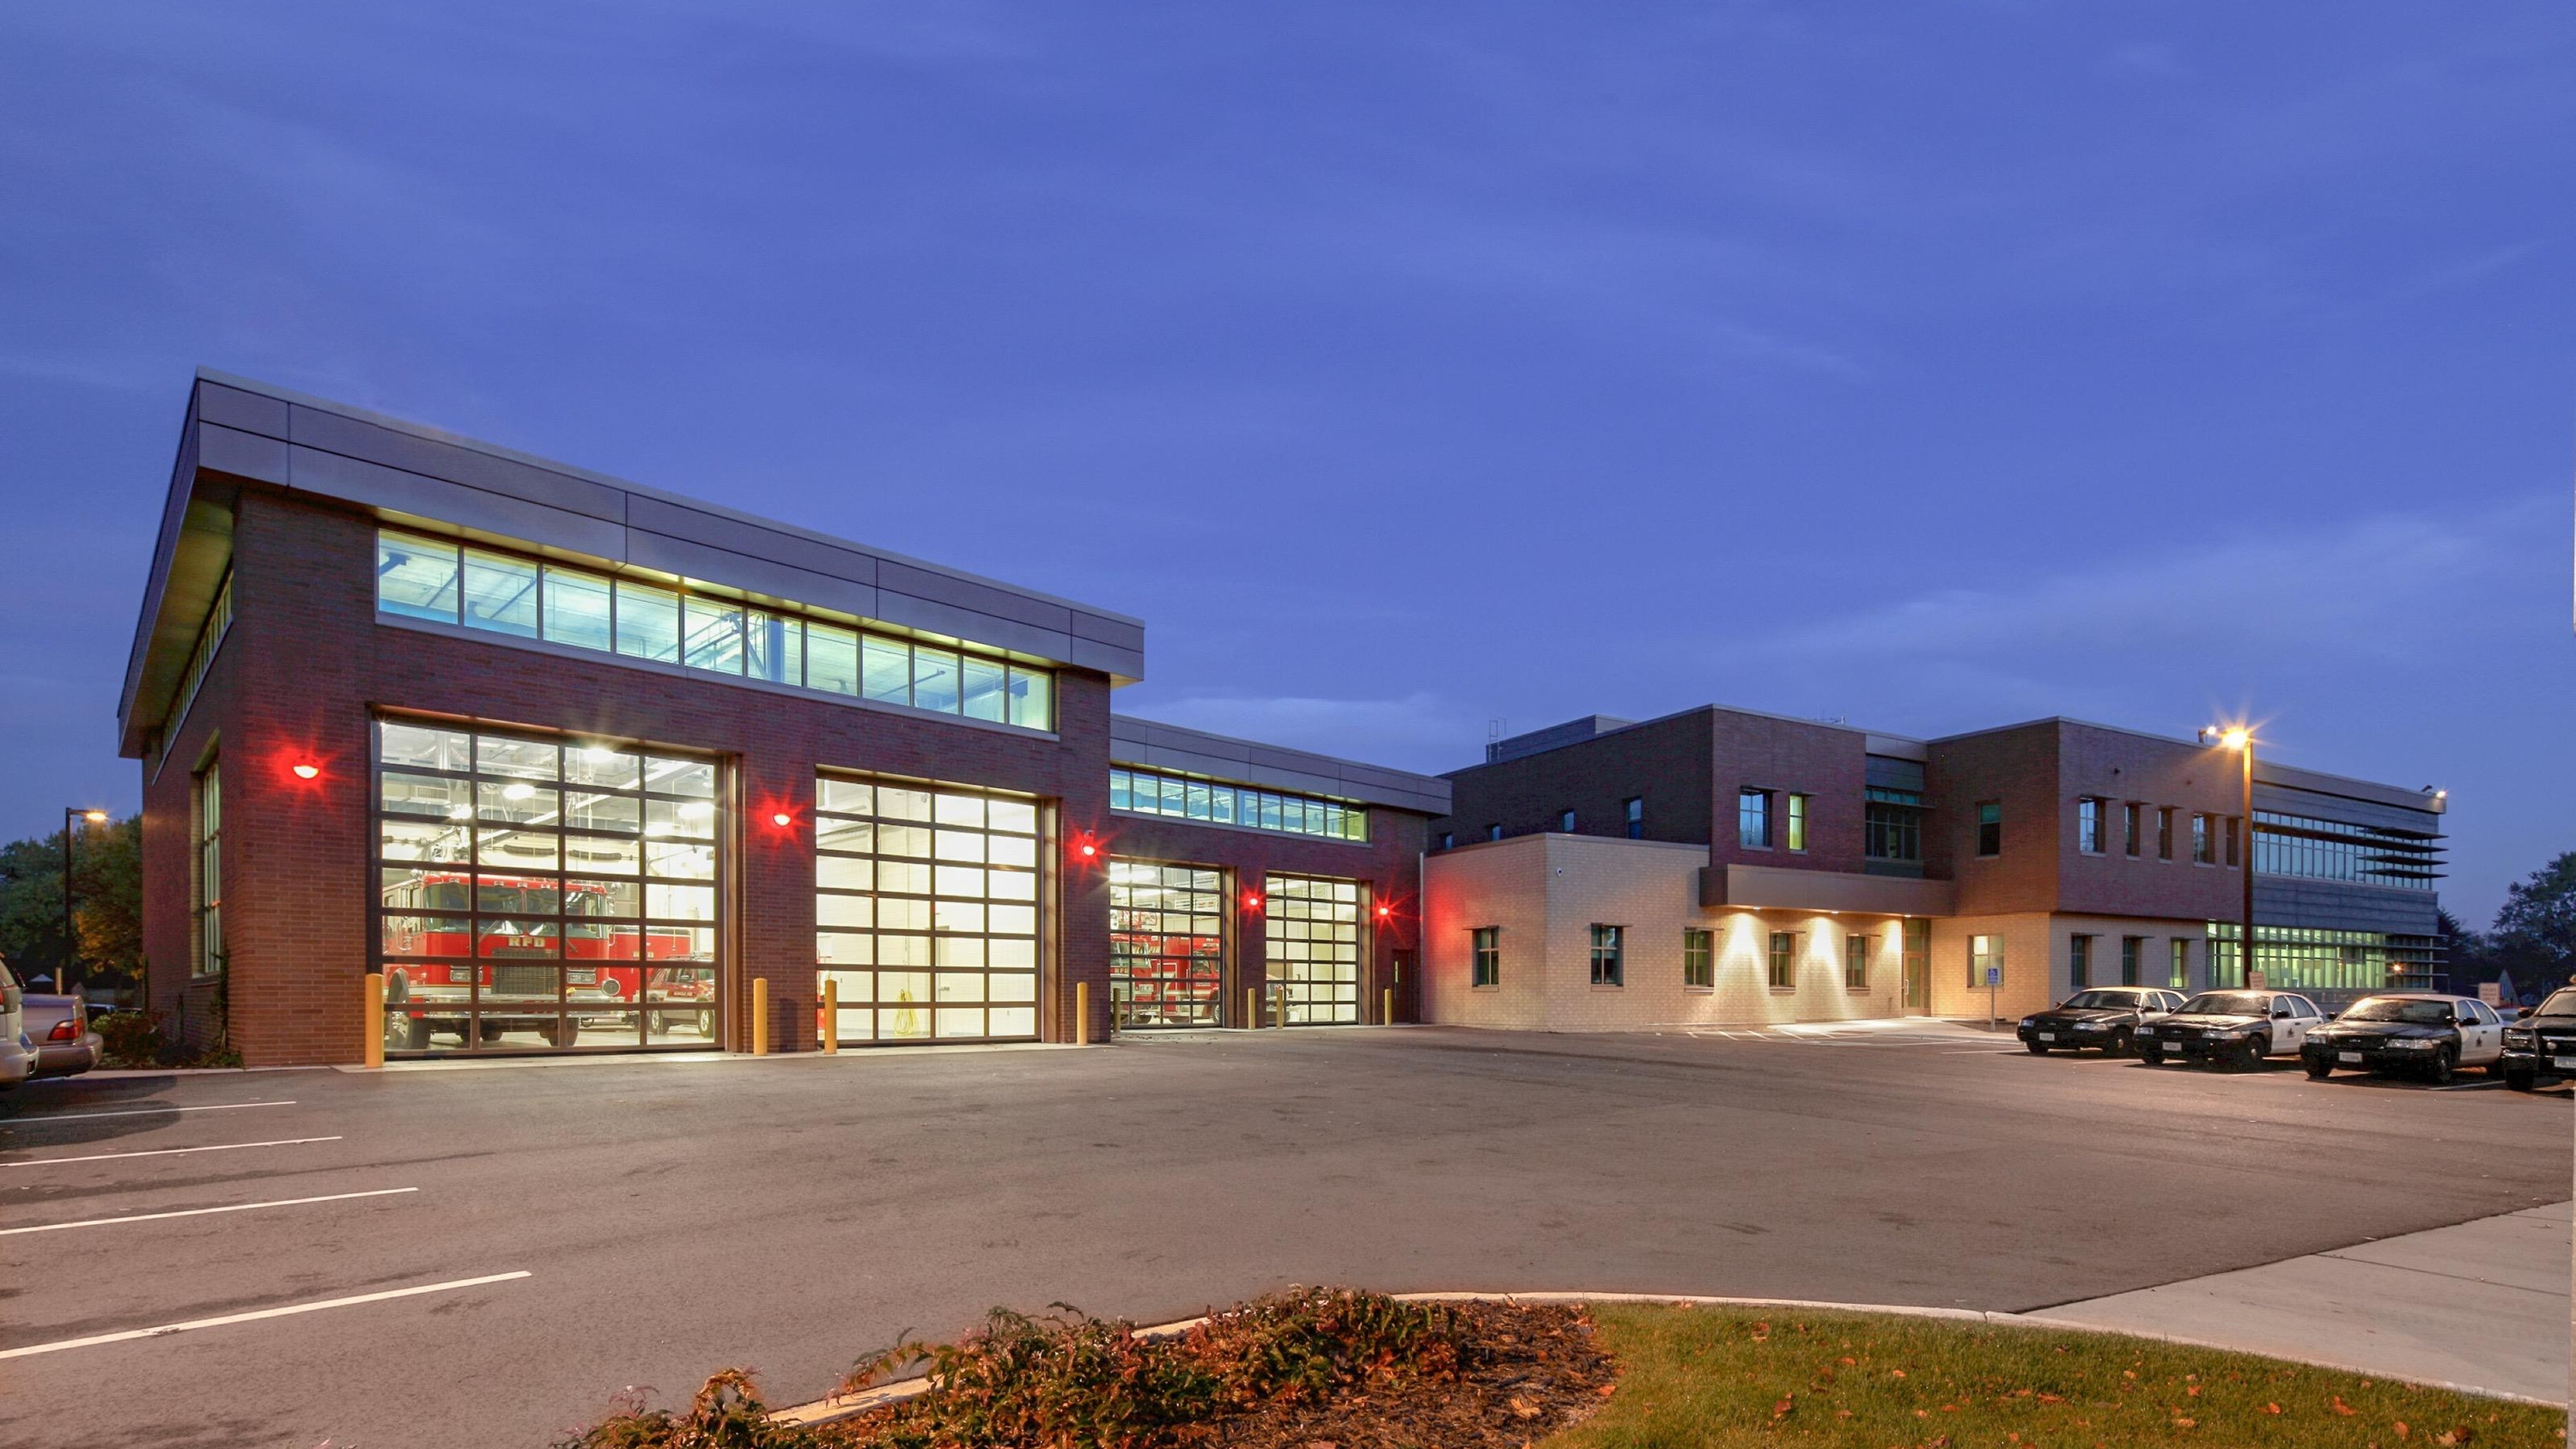 City of Richfield New City Hall Police and Fire3